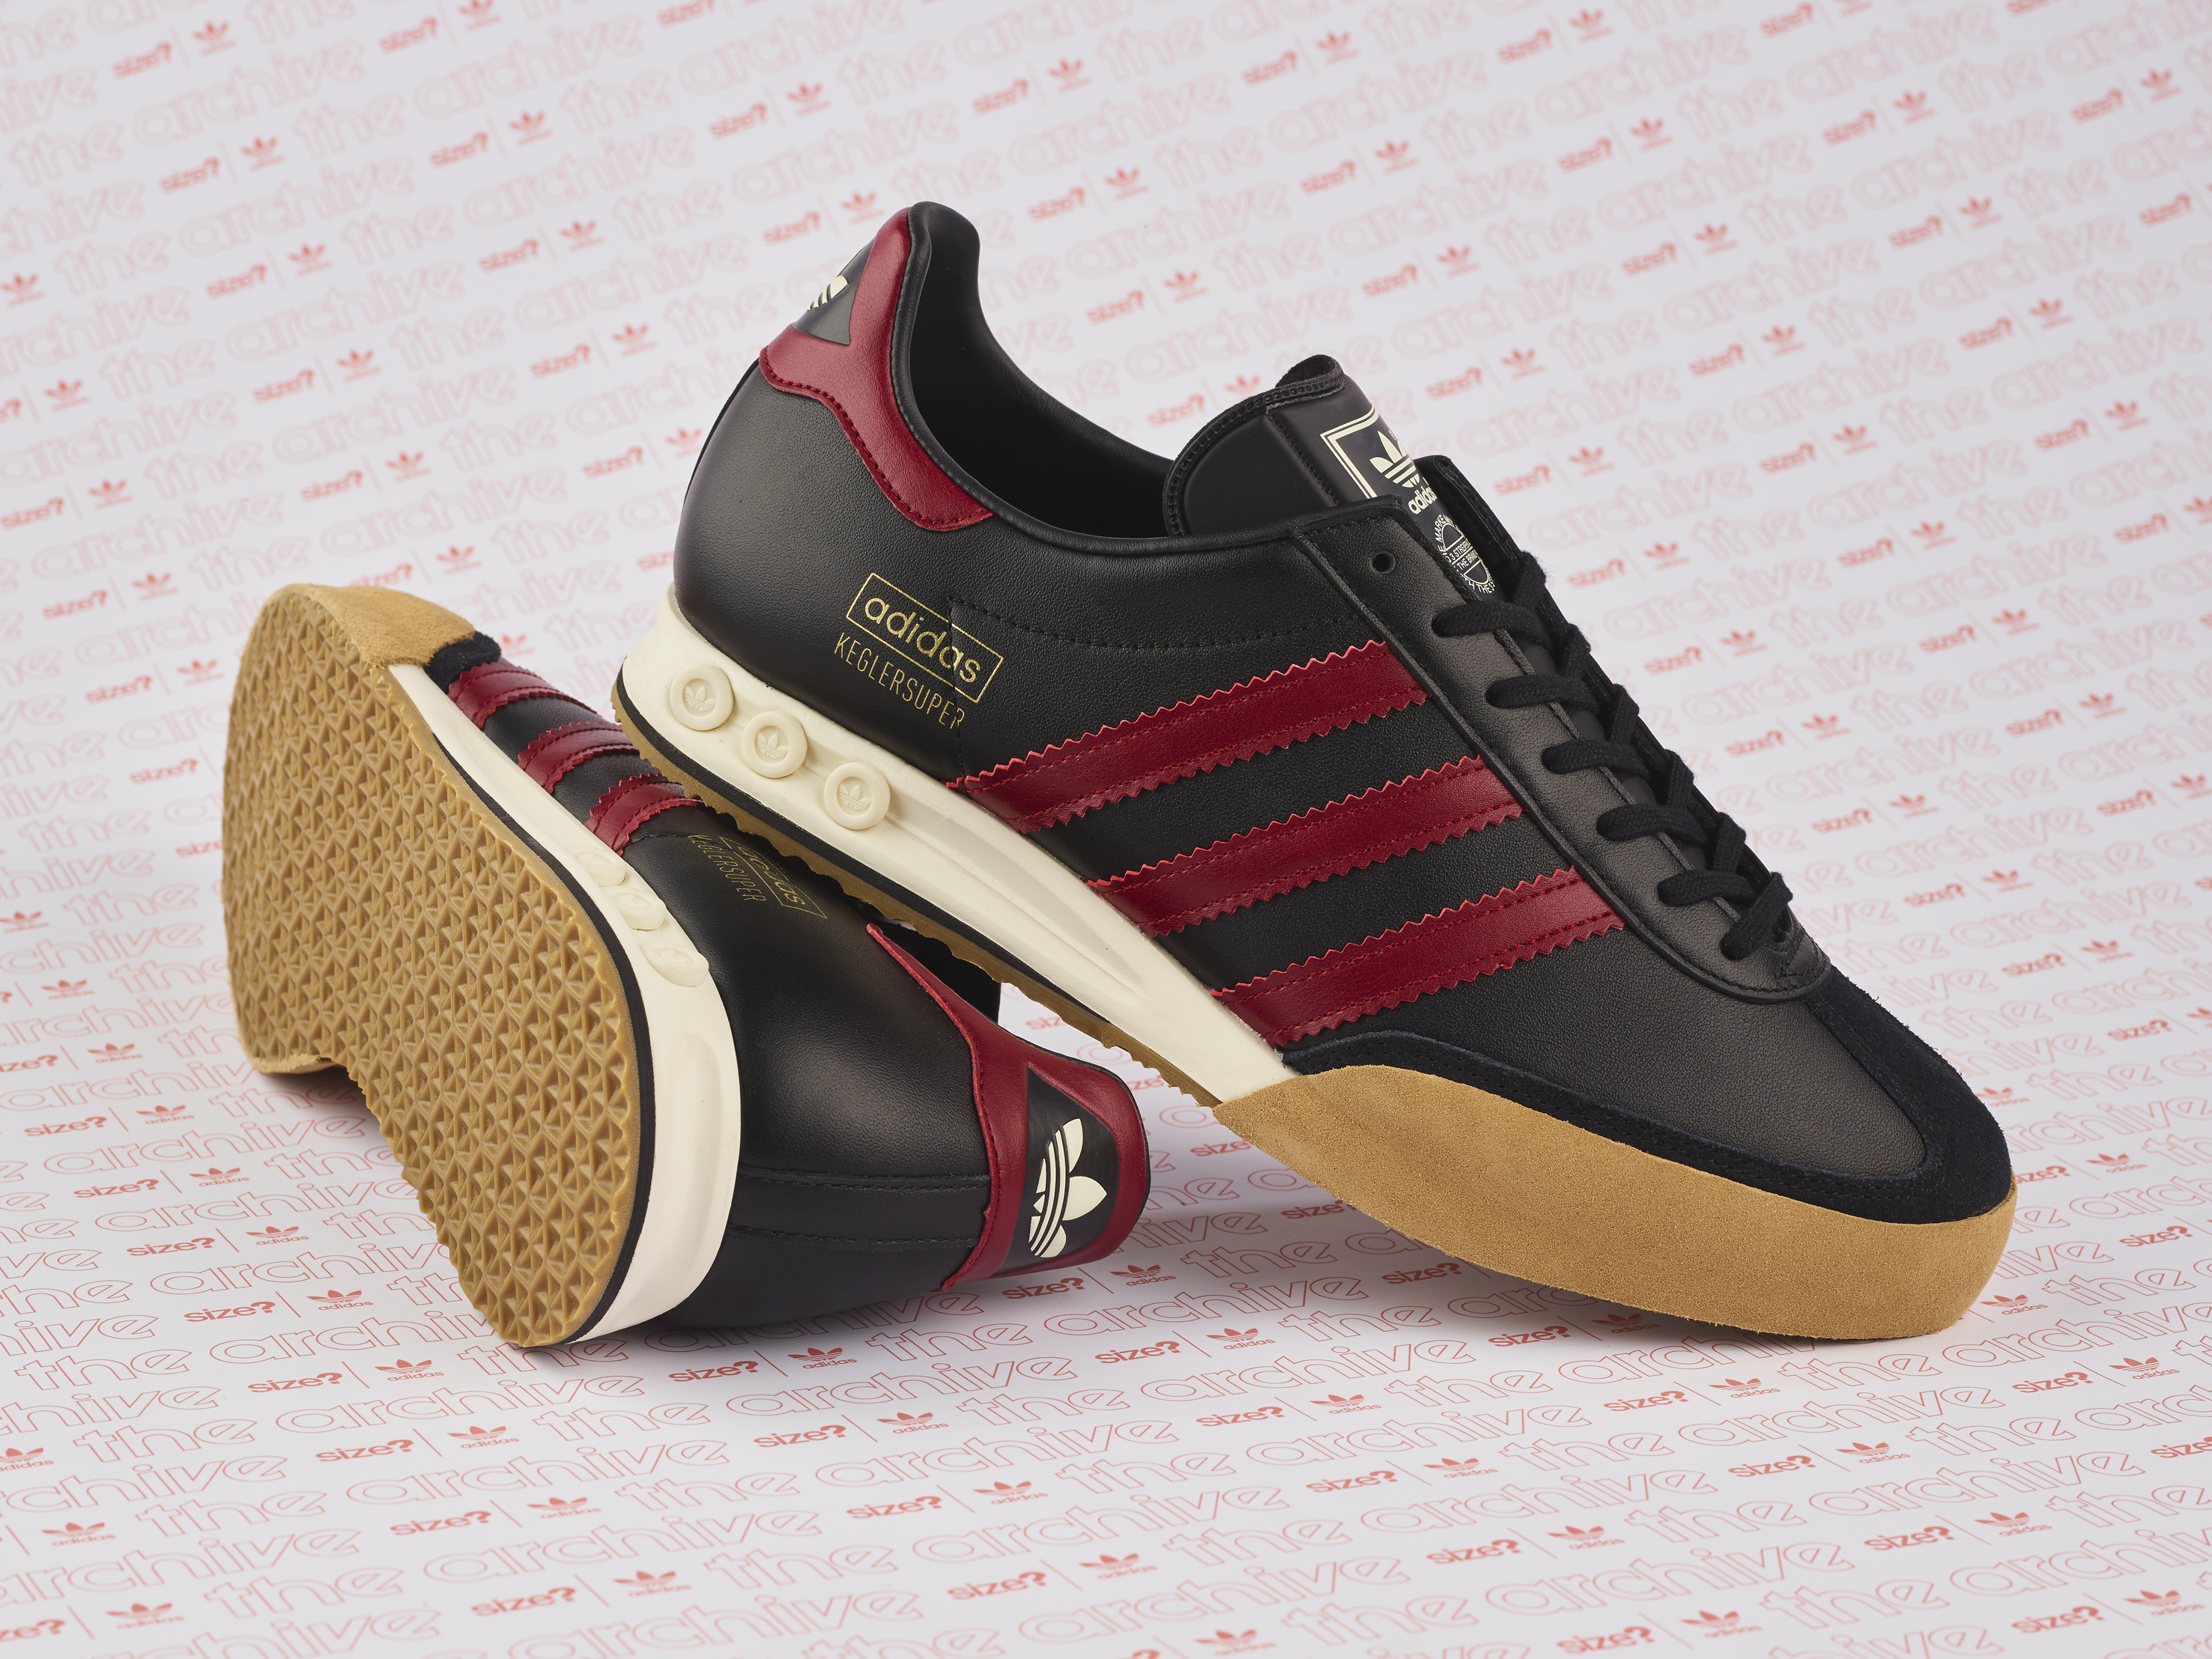 wholesale dealer c5c2e b0433 adidas Originals Archive Kegler Super OG BlackBurgundy – size Exclusive